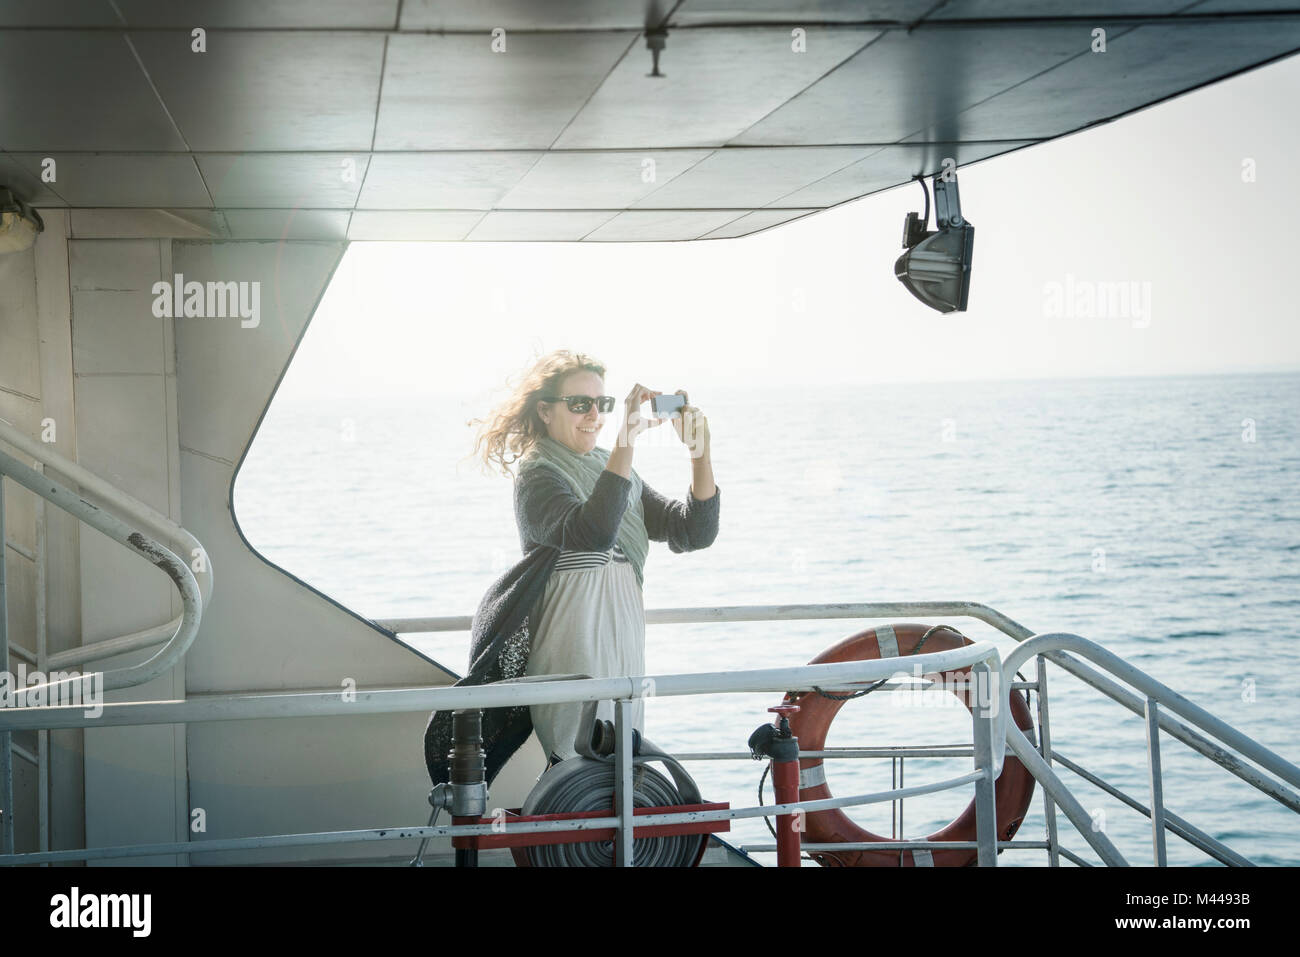 Woman on ferry taking photograph Stock Photo